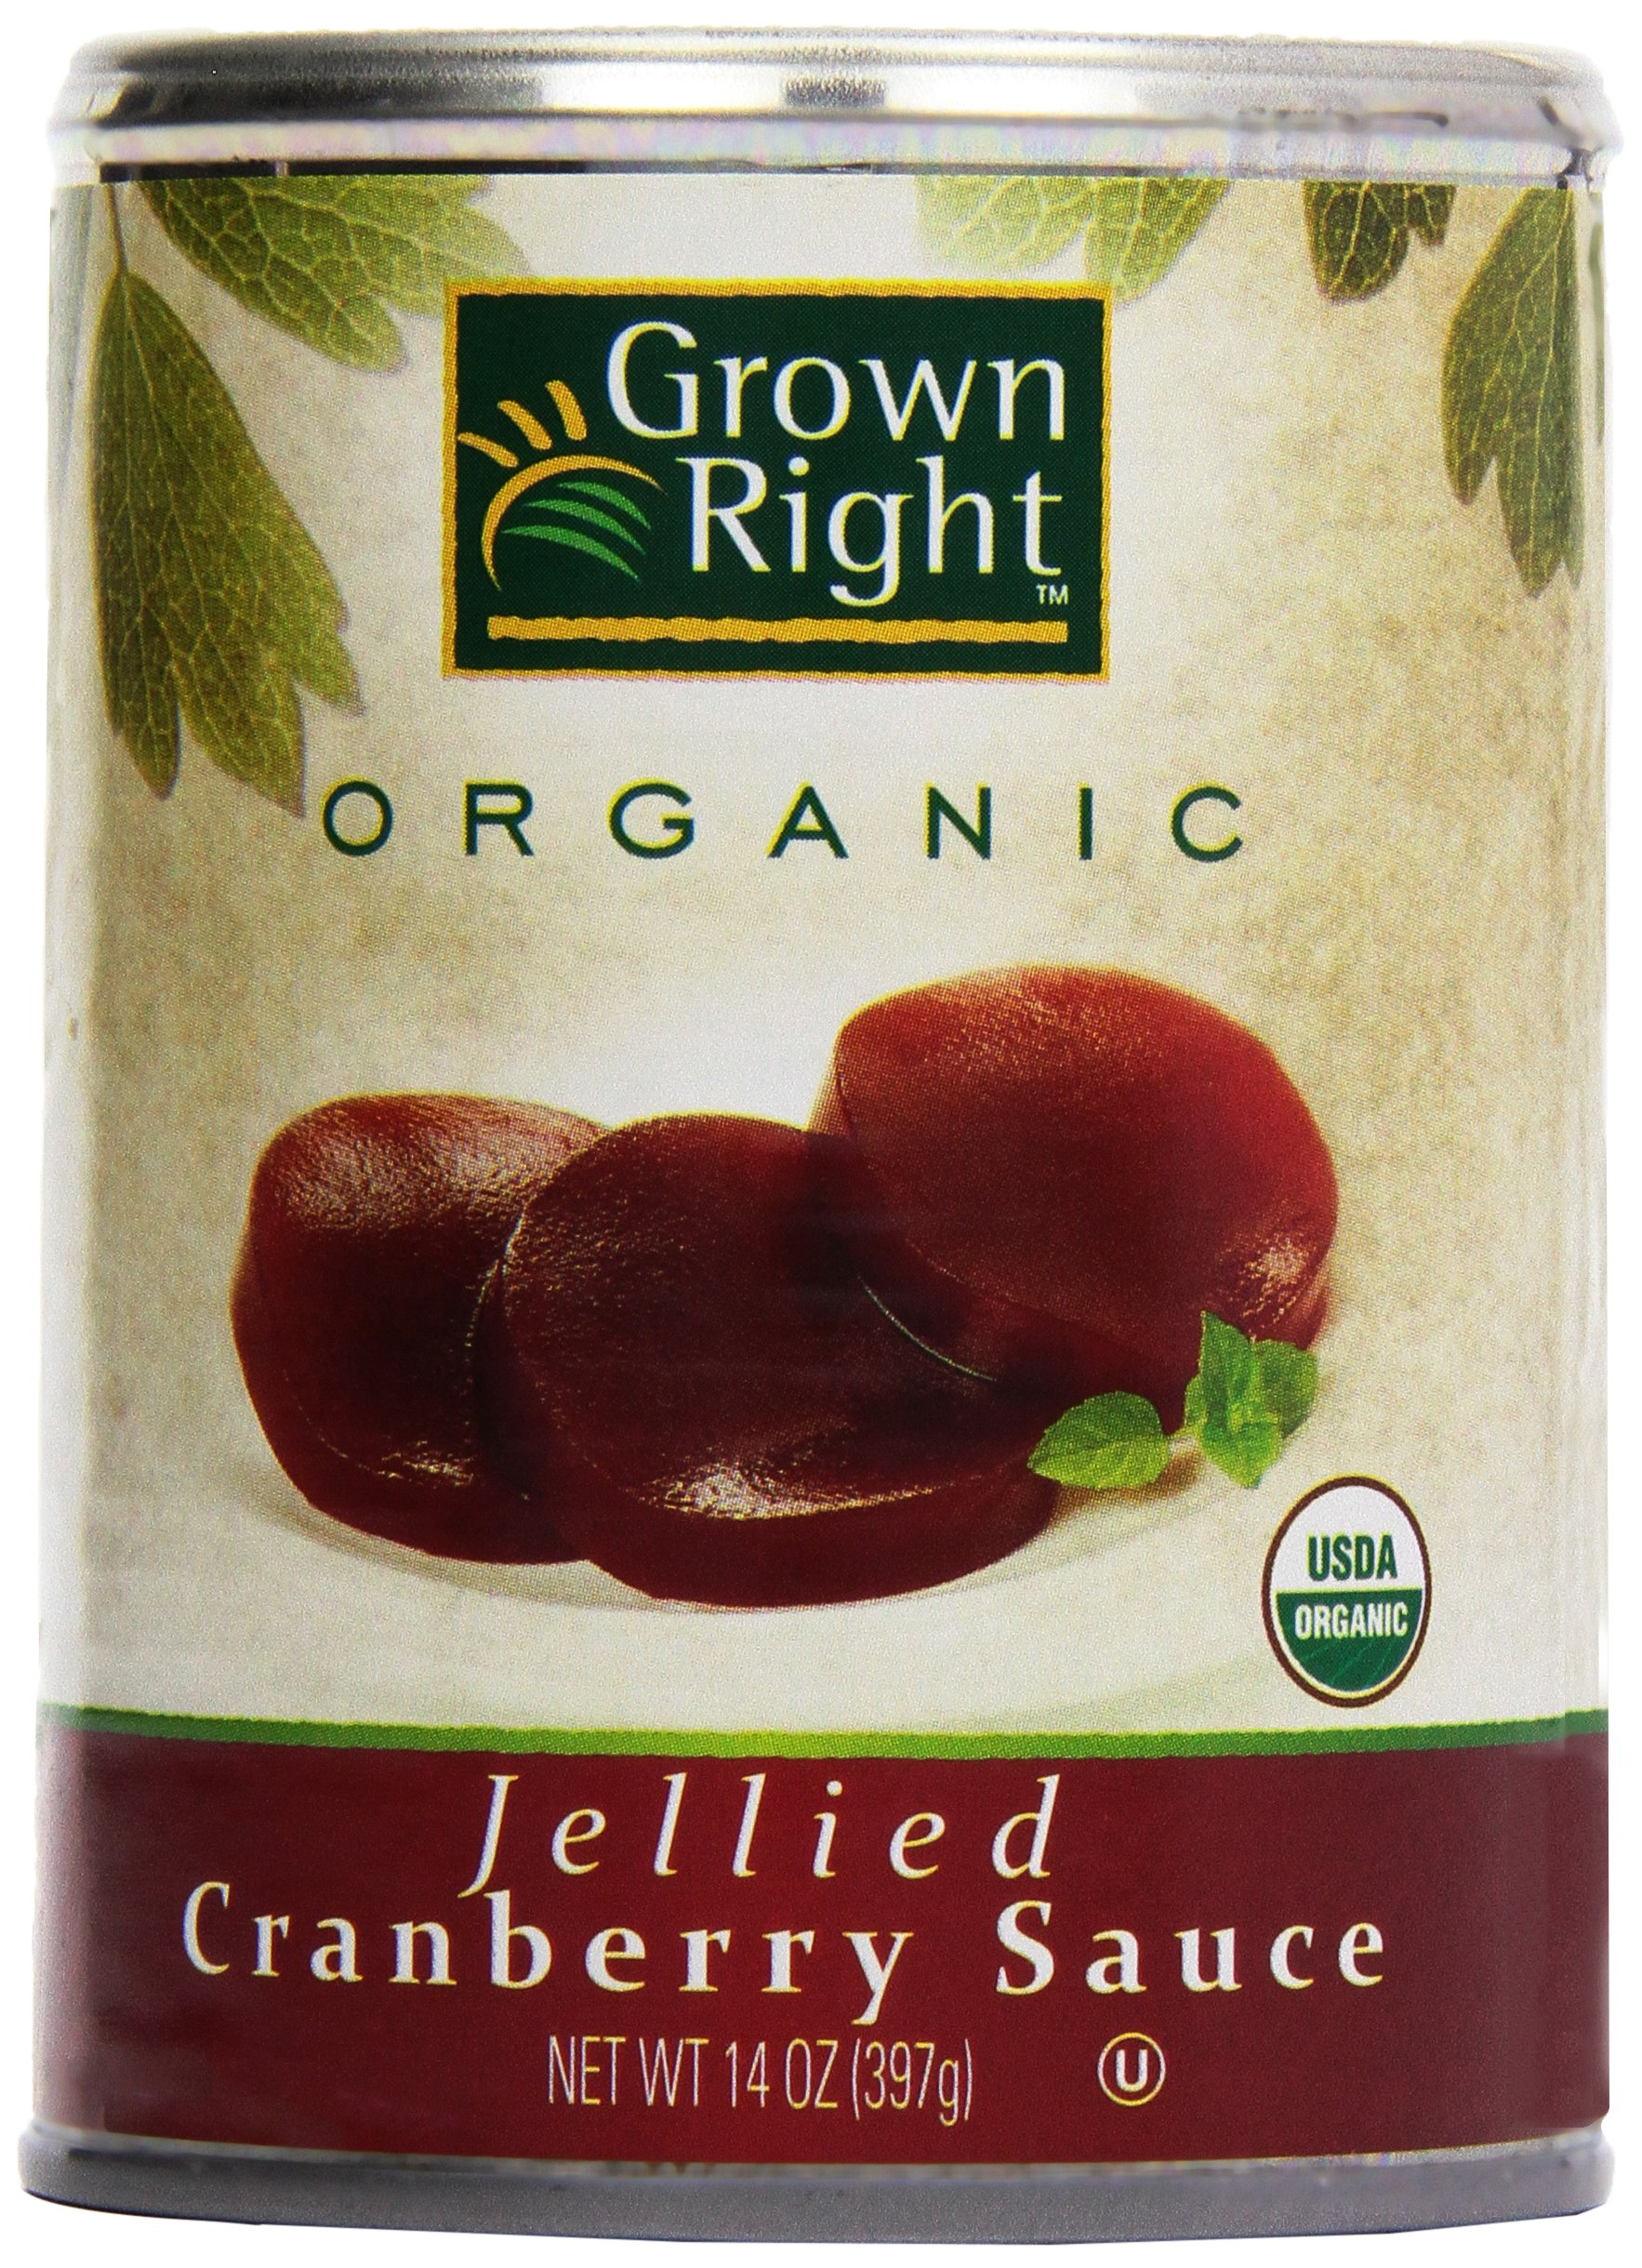 Grown Right Organic Jellied Cranberry Sauce, 16 oz by Grown Right (Image #1)